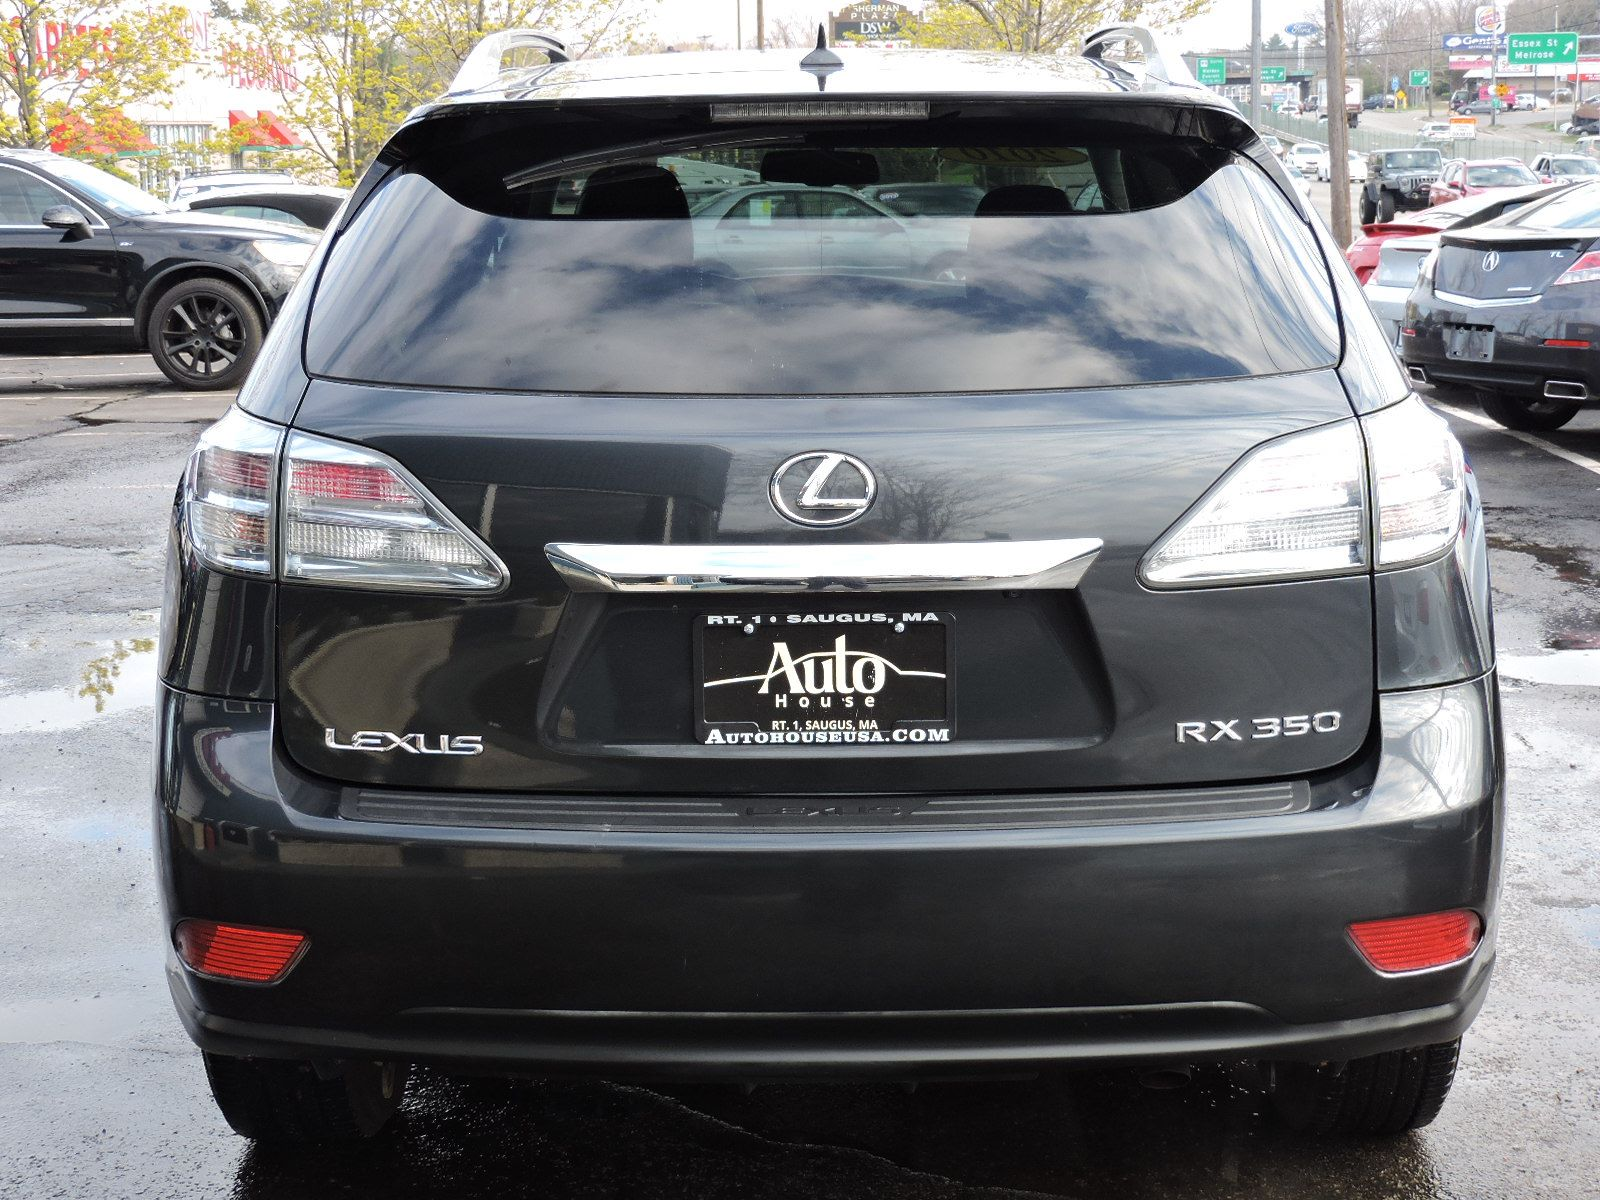 Used 2010 Lexus RX 350 Sport at Saugus Auto Mall